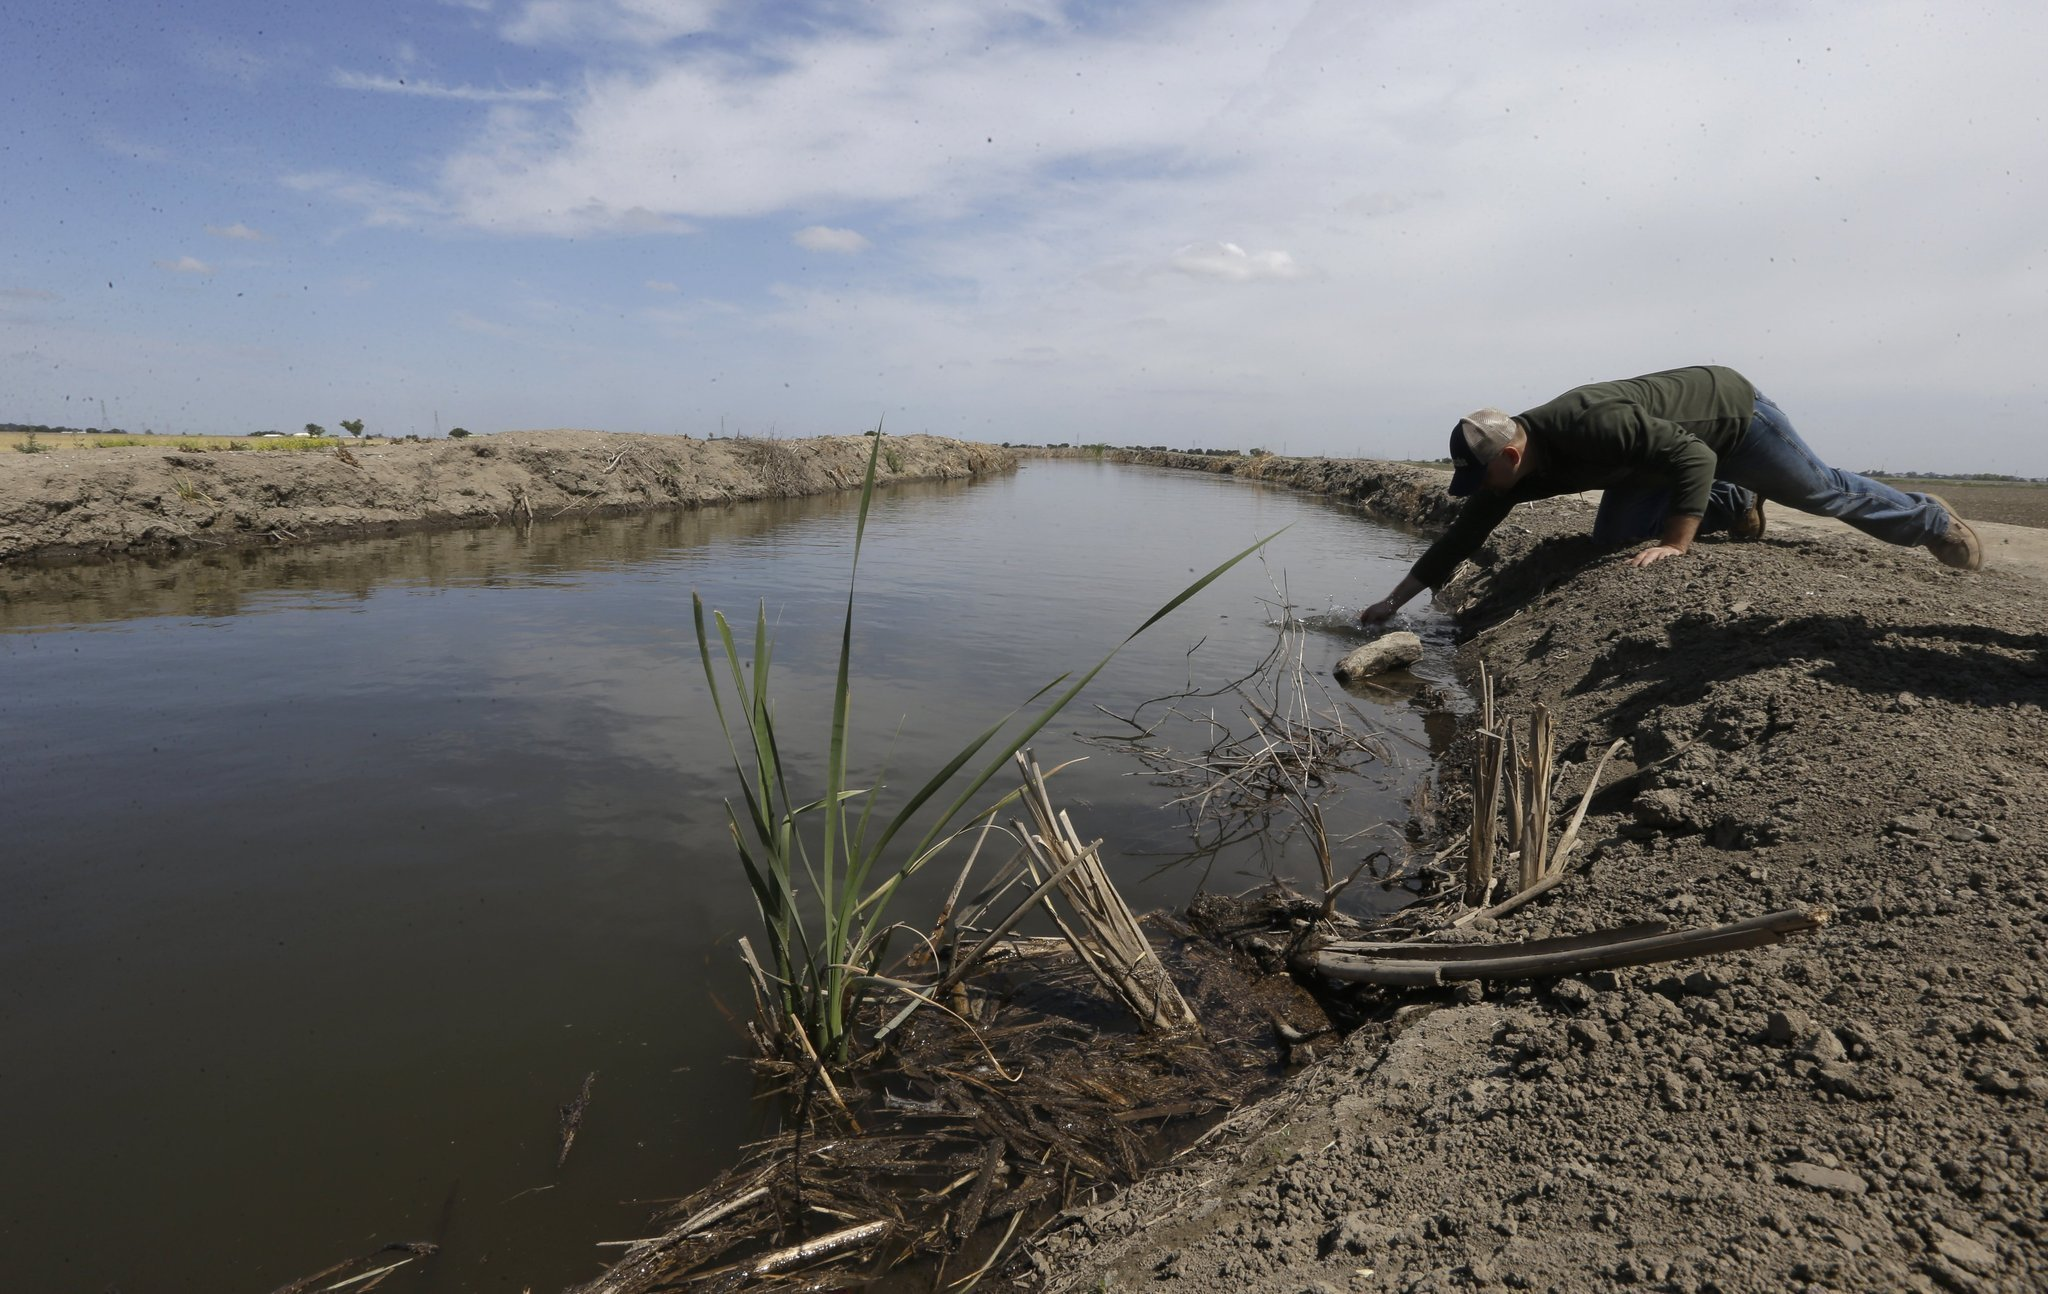 25% voluntary cut in farmers' water use OK'd by California amid drought